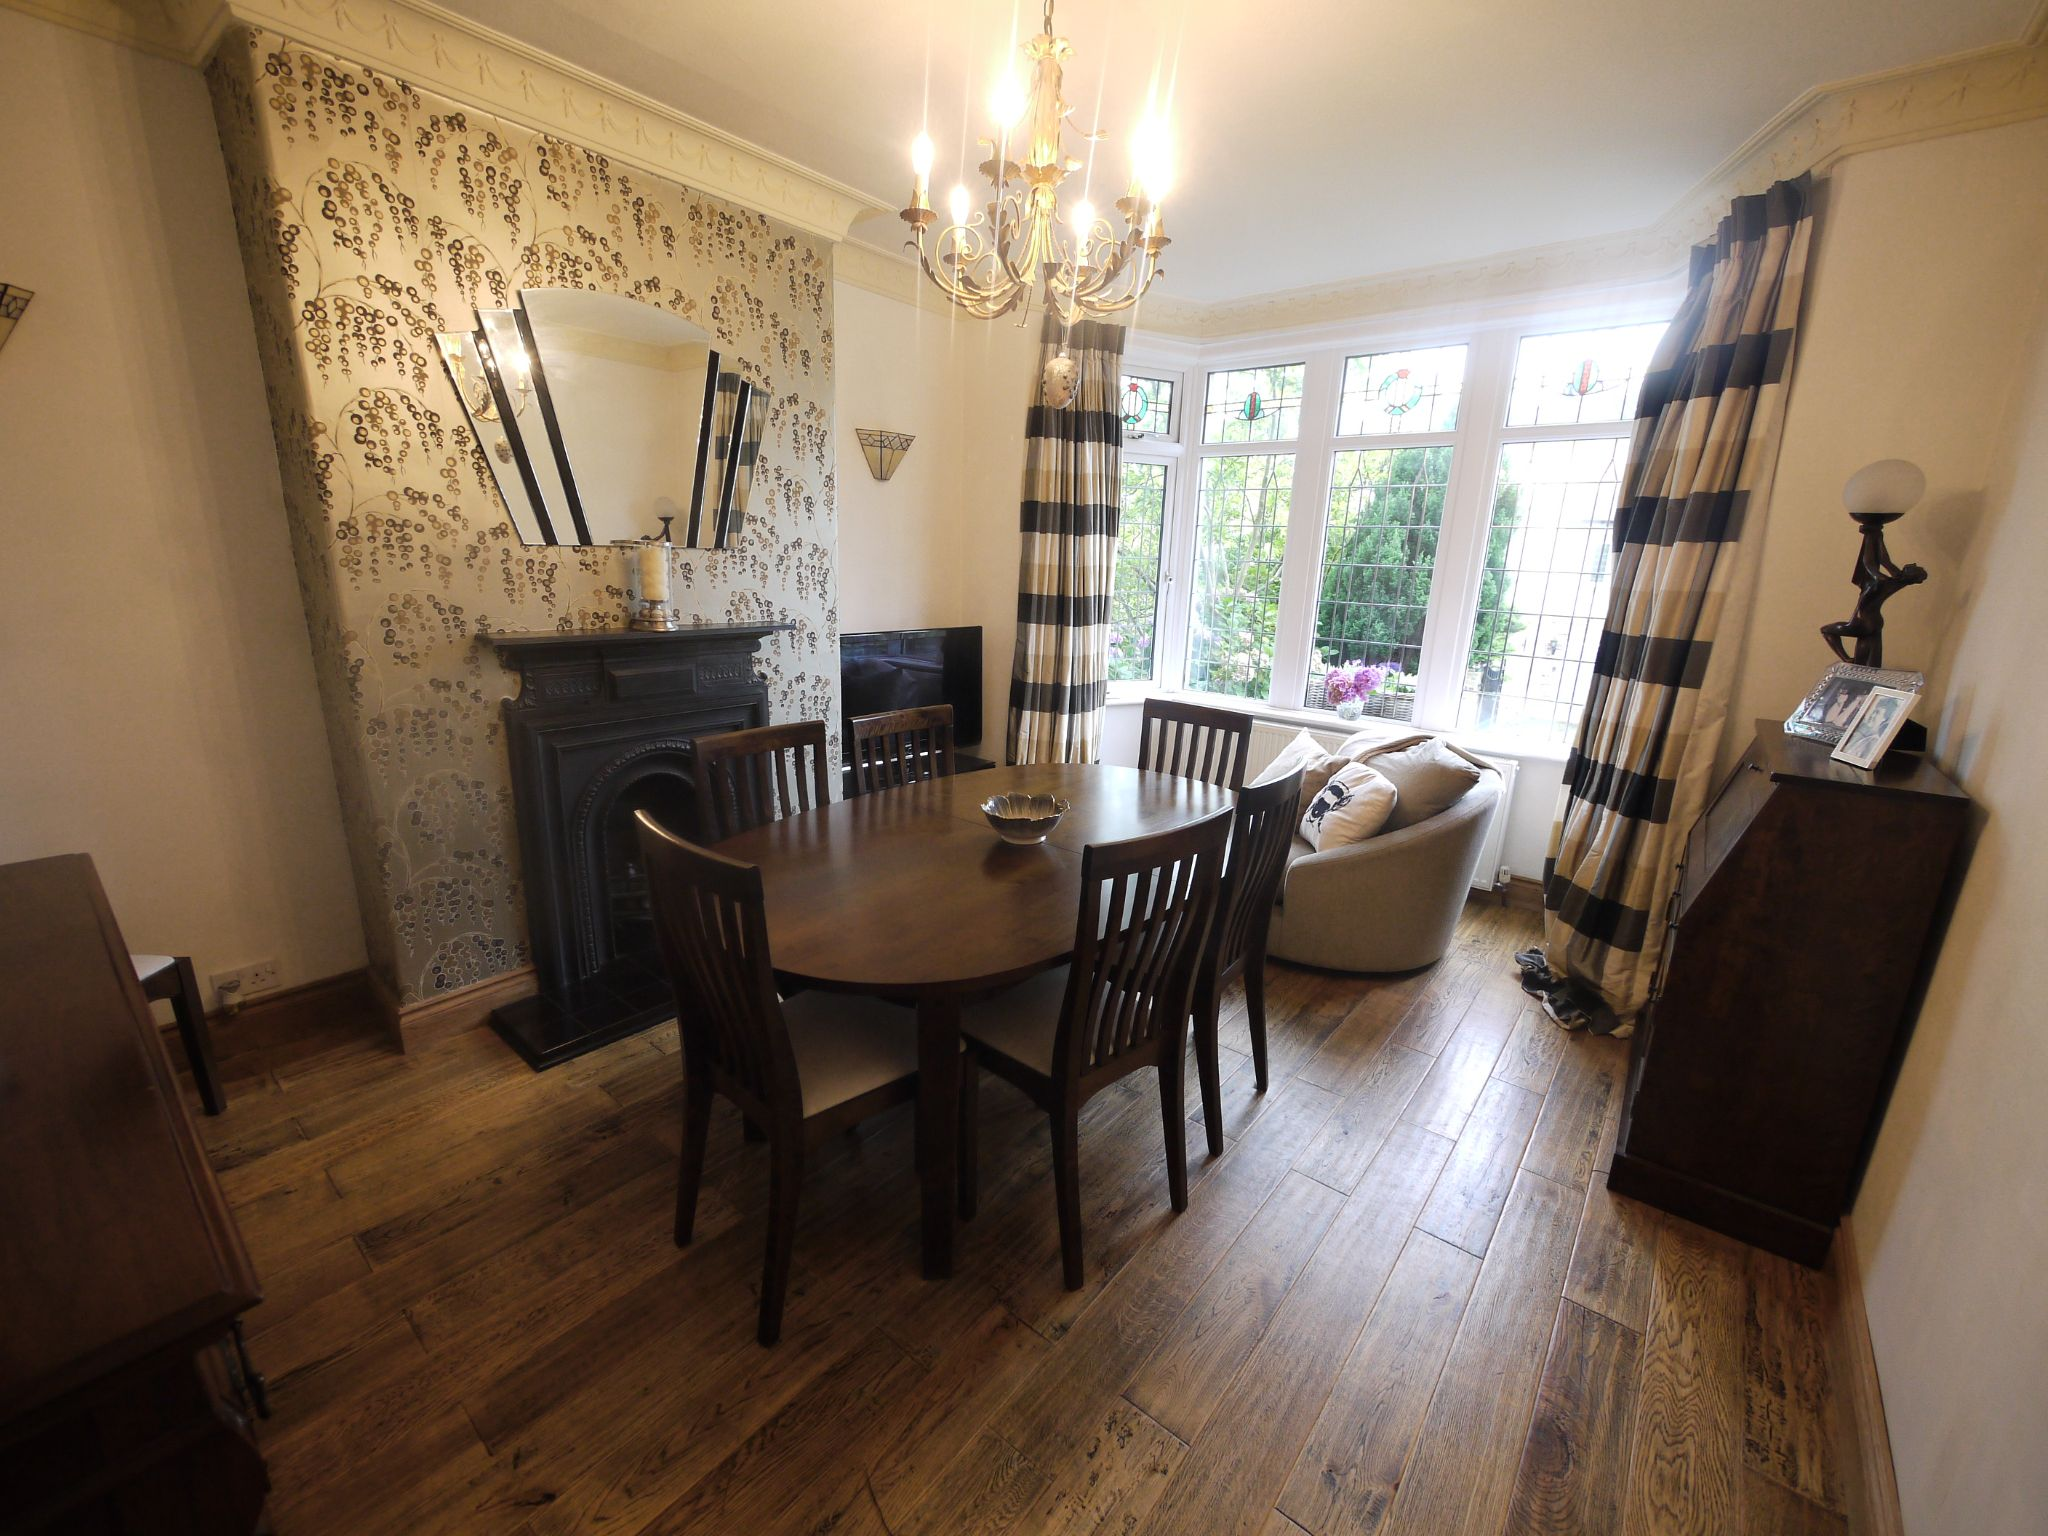 4 bedroom semi-detached house SSTC in Halifax - Dining Room 1.